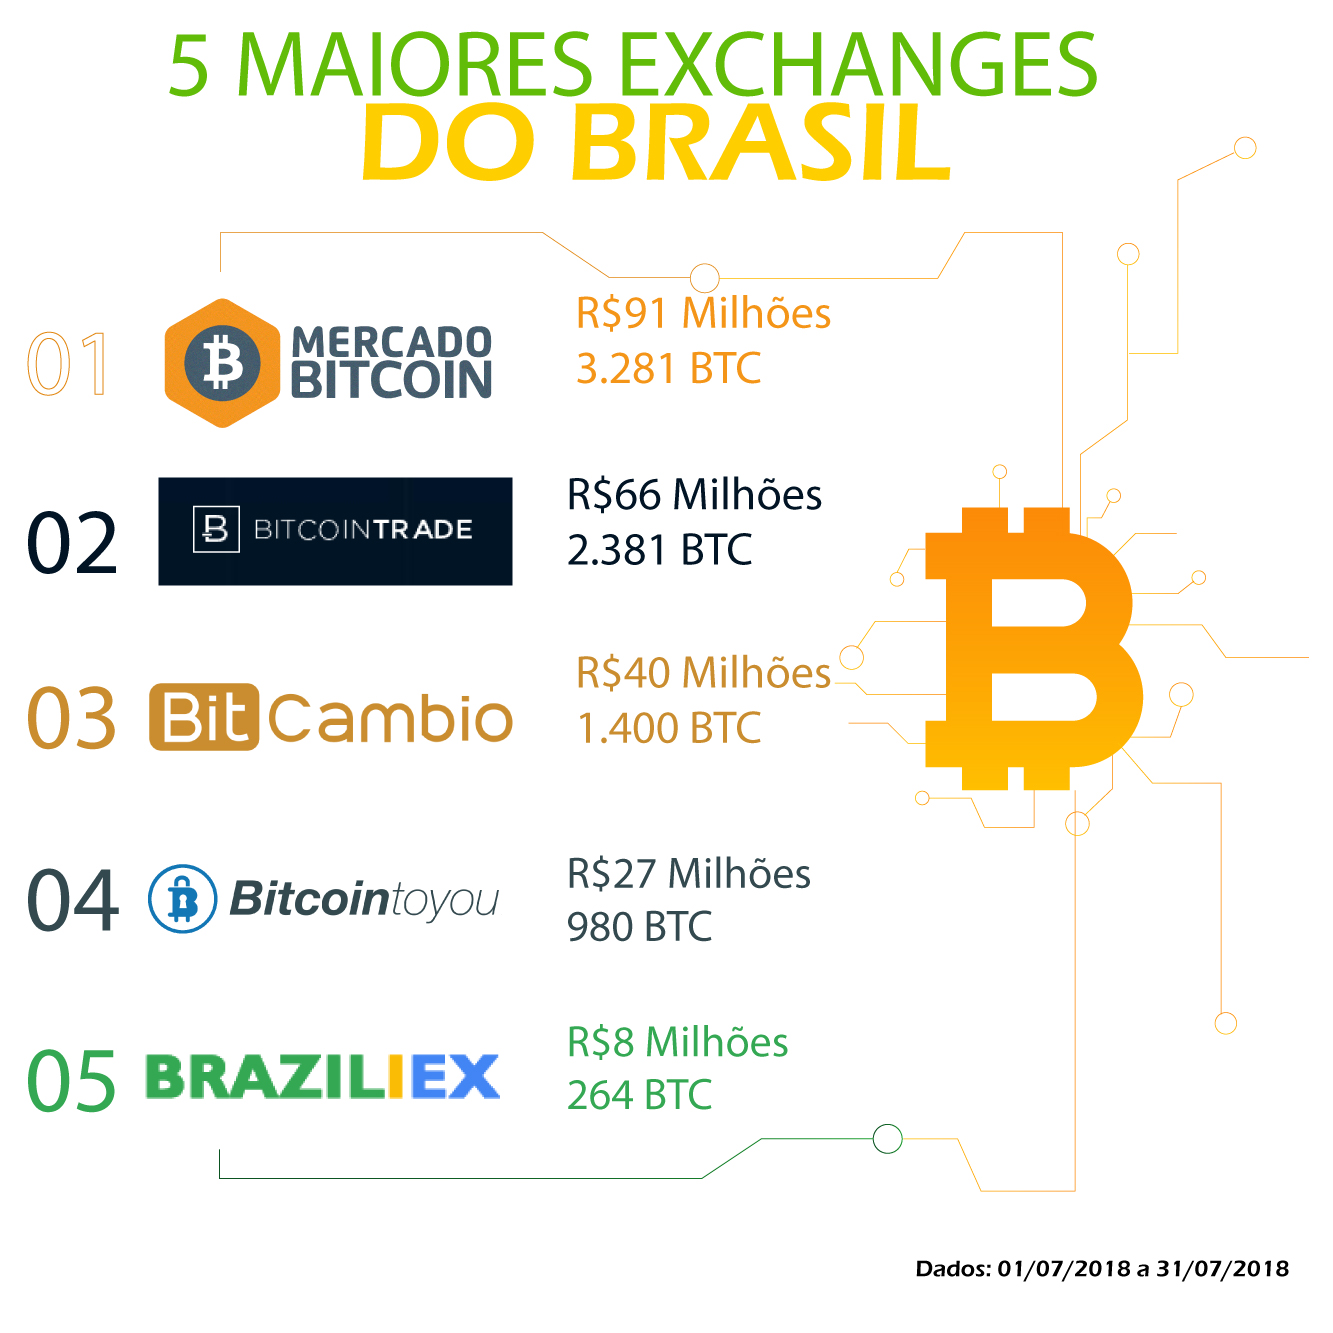 5-Maiores-Exchanges-Brasil-2018